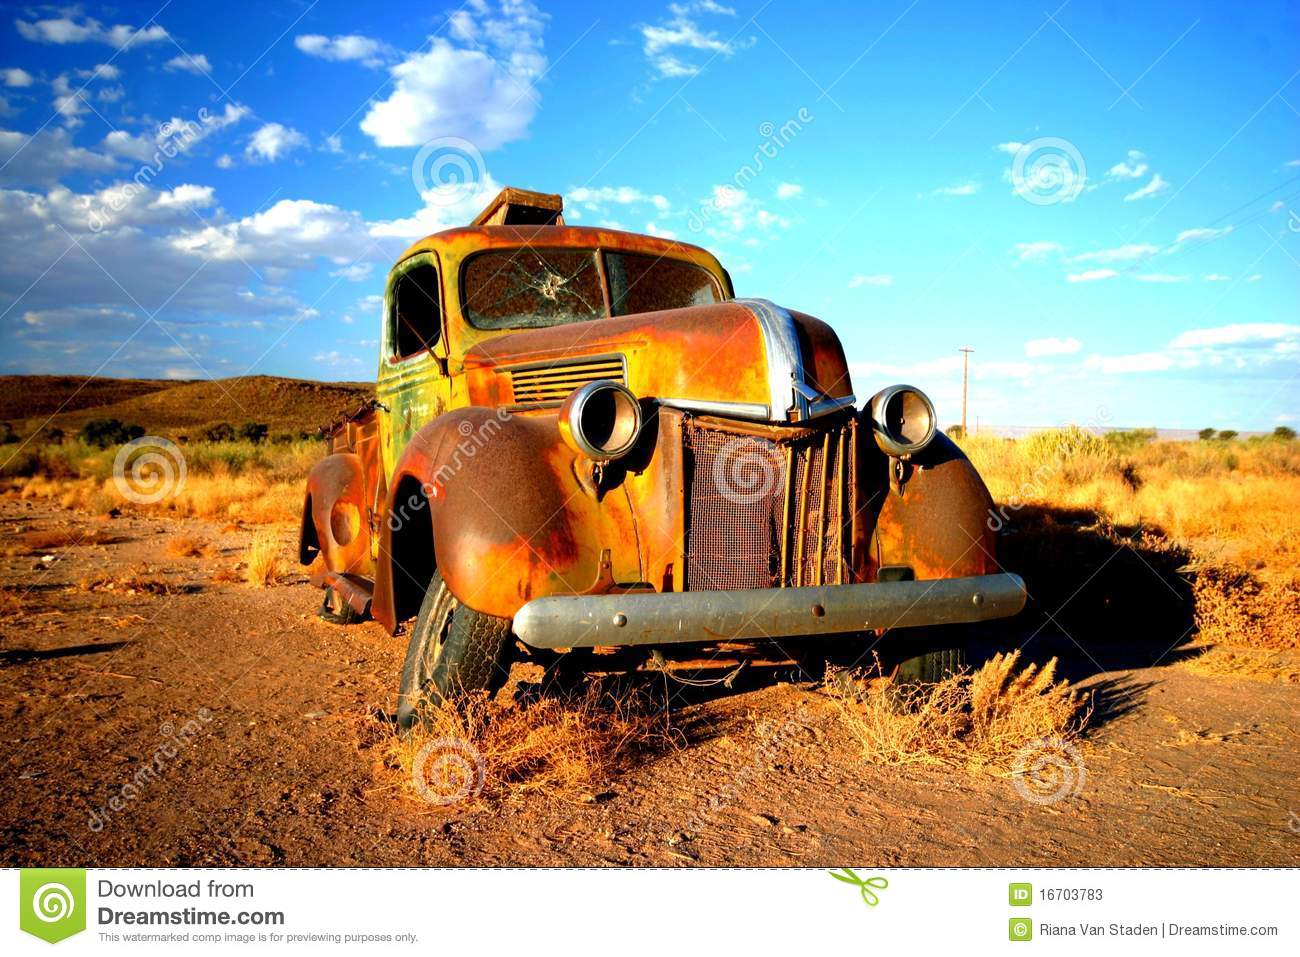 Rusty Old Car In Namibia Stock Image. Image Of Sand